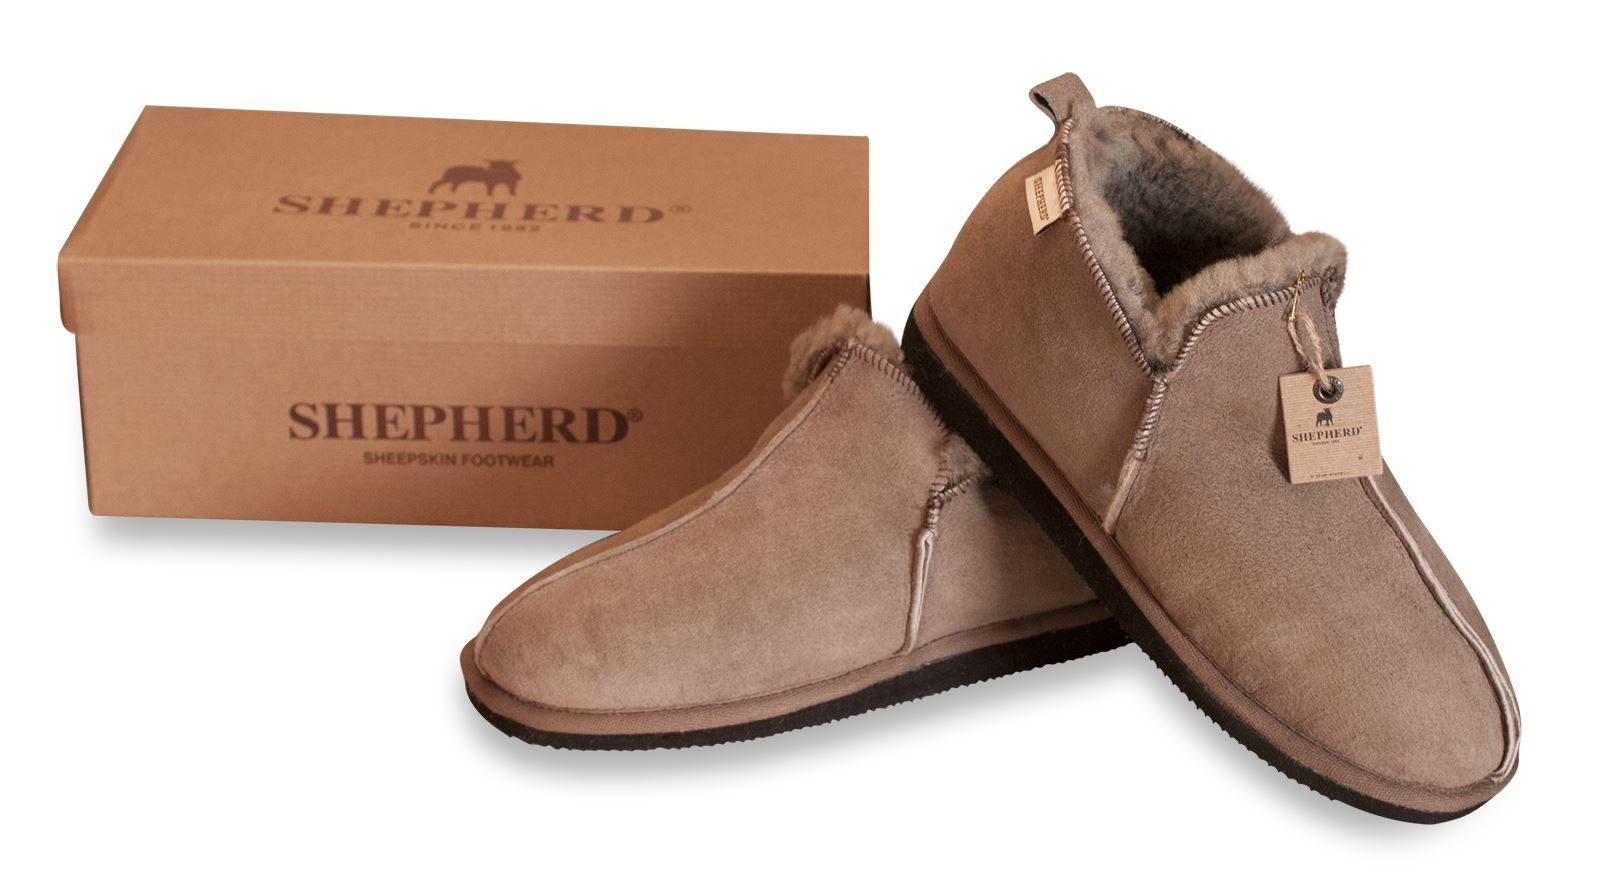 Shepherd hommes Chaussons Chaussure 100% vrai peau mouton semelle ... a47bf8740620